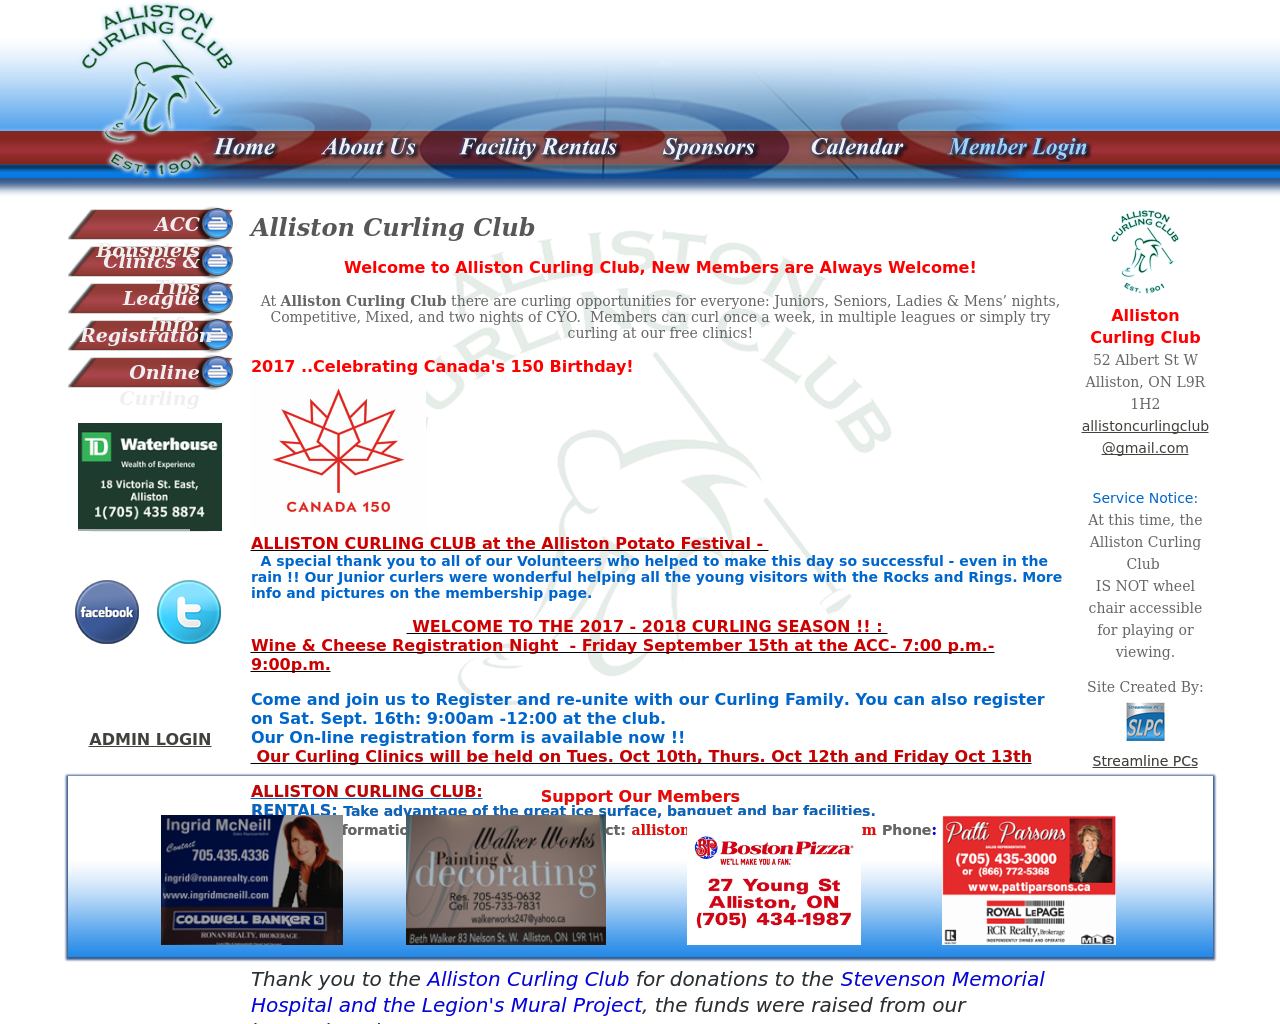 Alliston-Curling-Club-Advertising-Reviews-Pricing